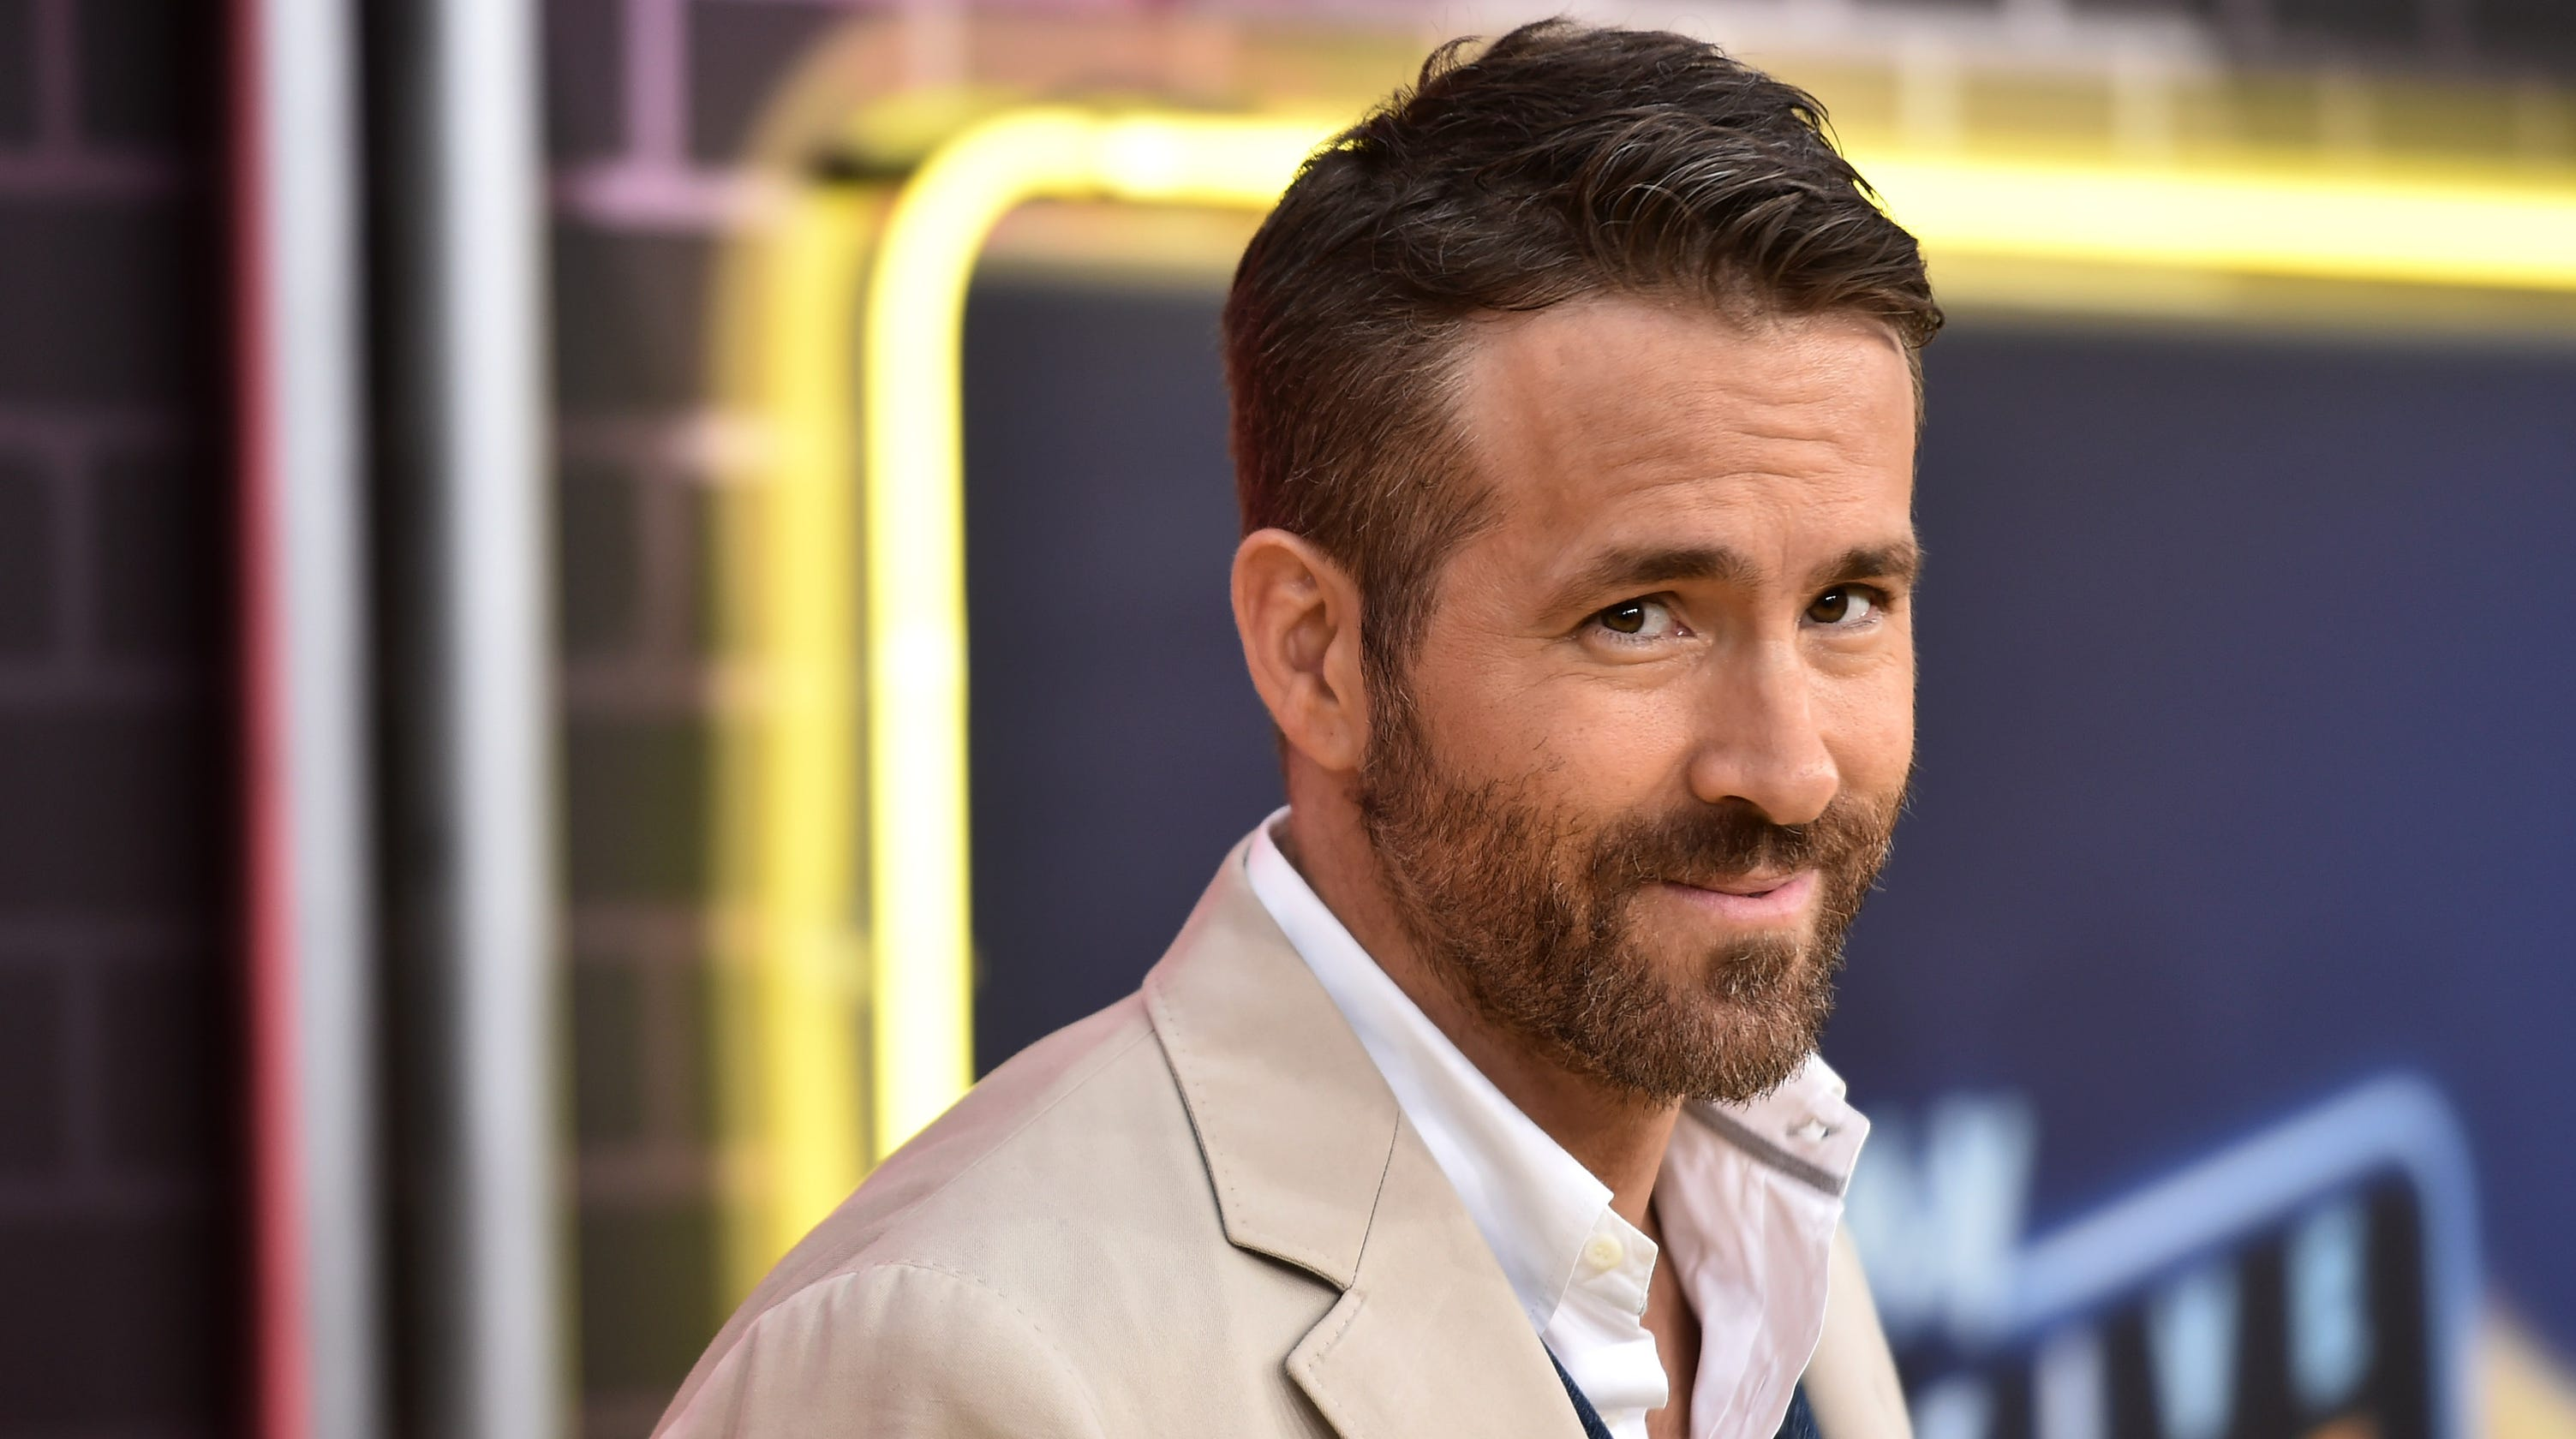 Ryan Reynolds gives his gin company ★★★★ in trolling Amazon review